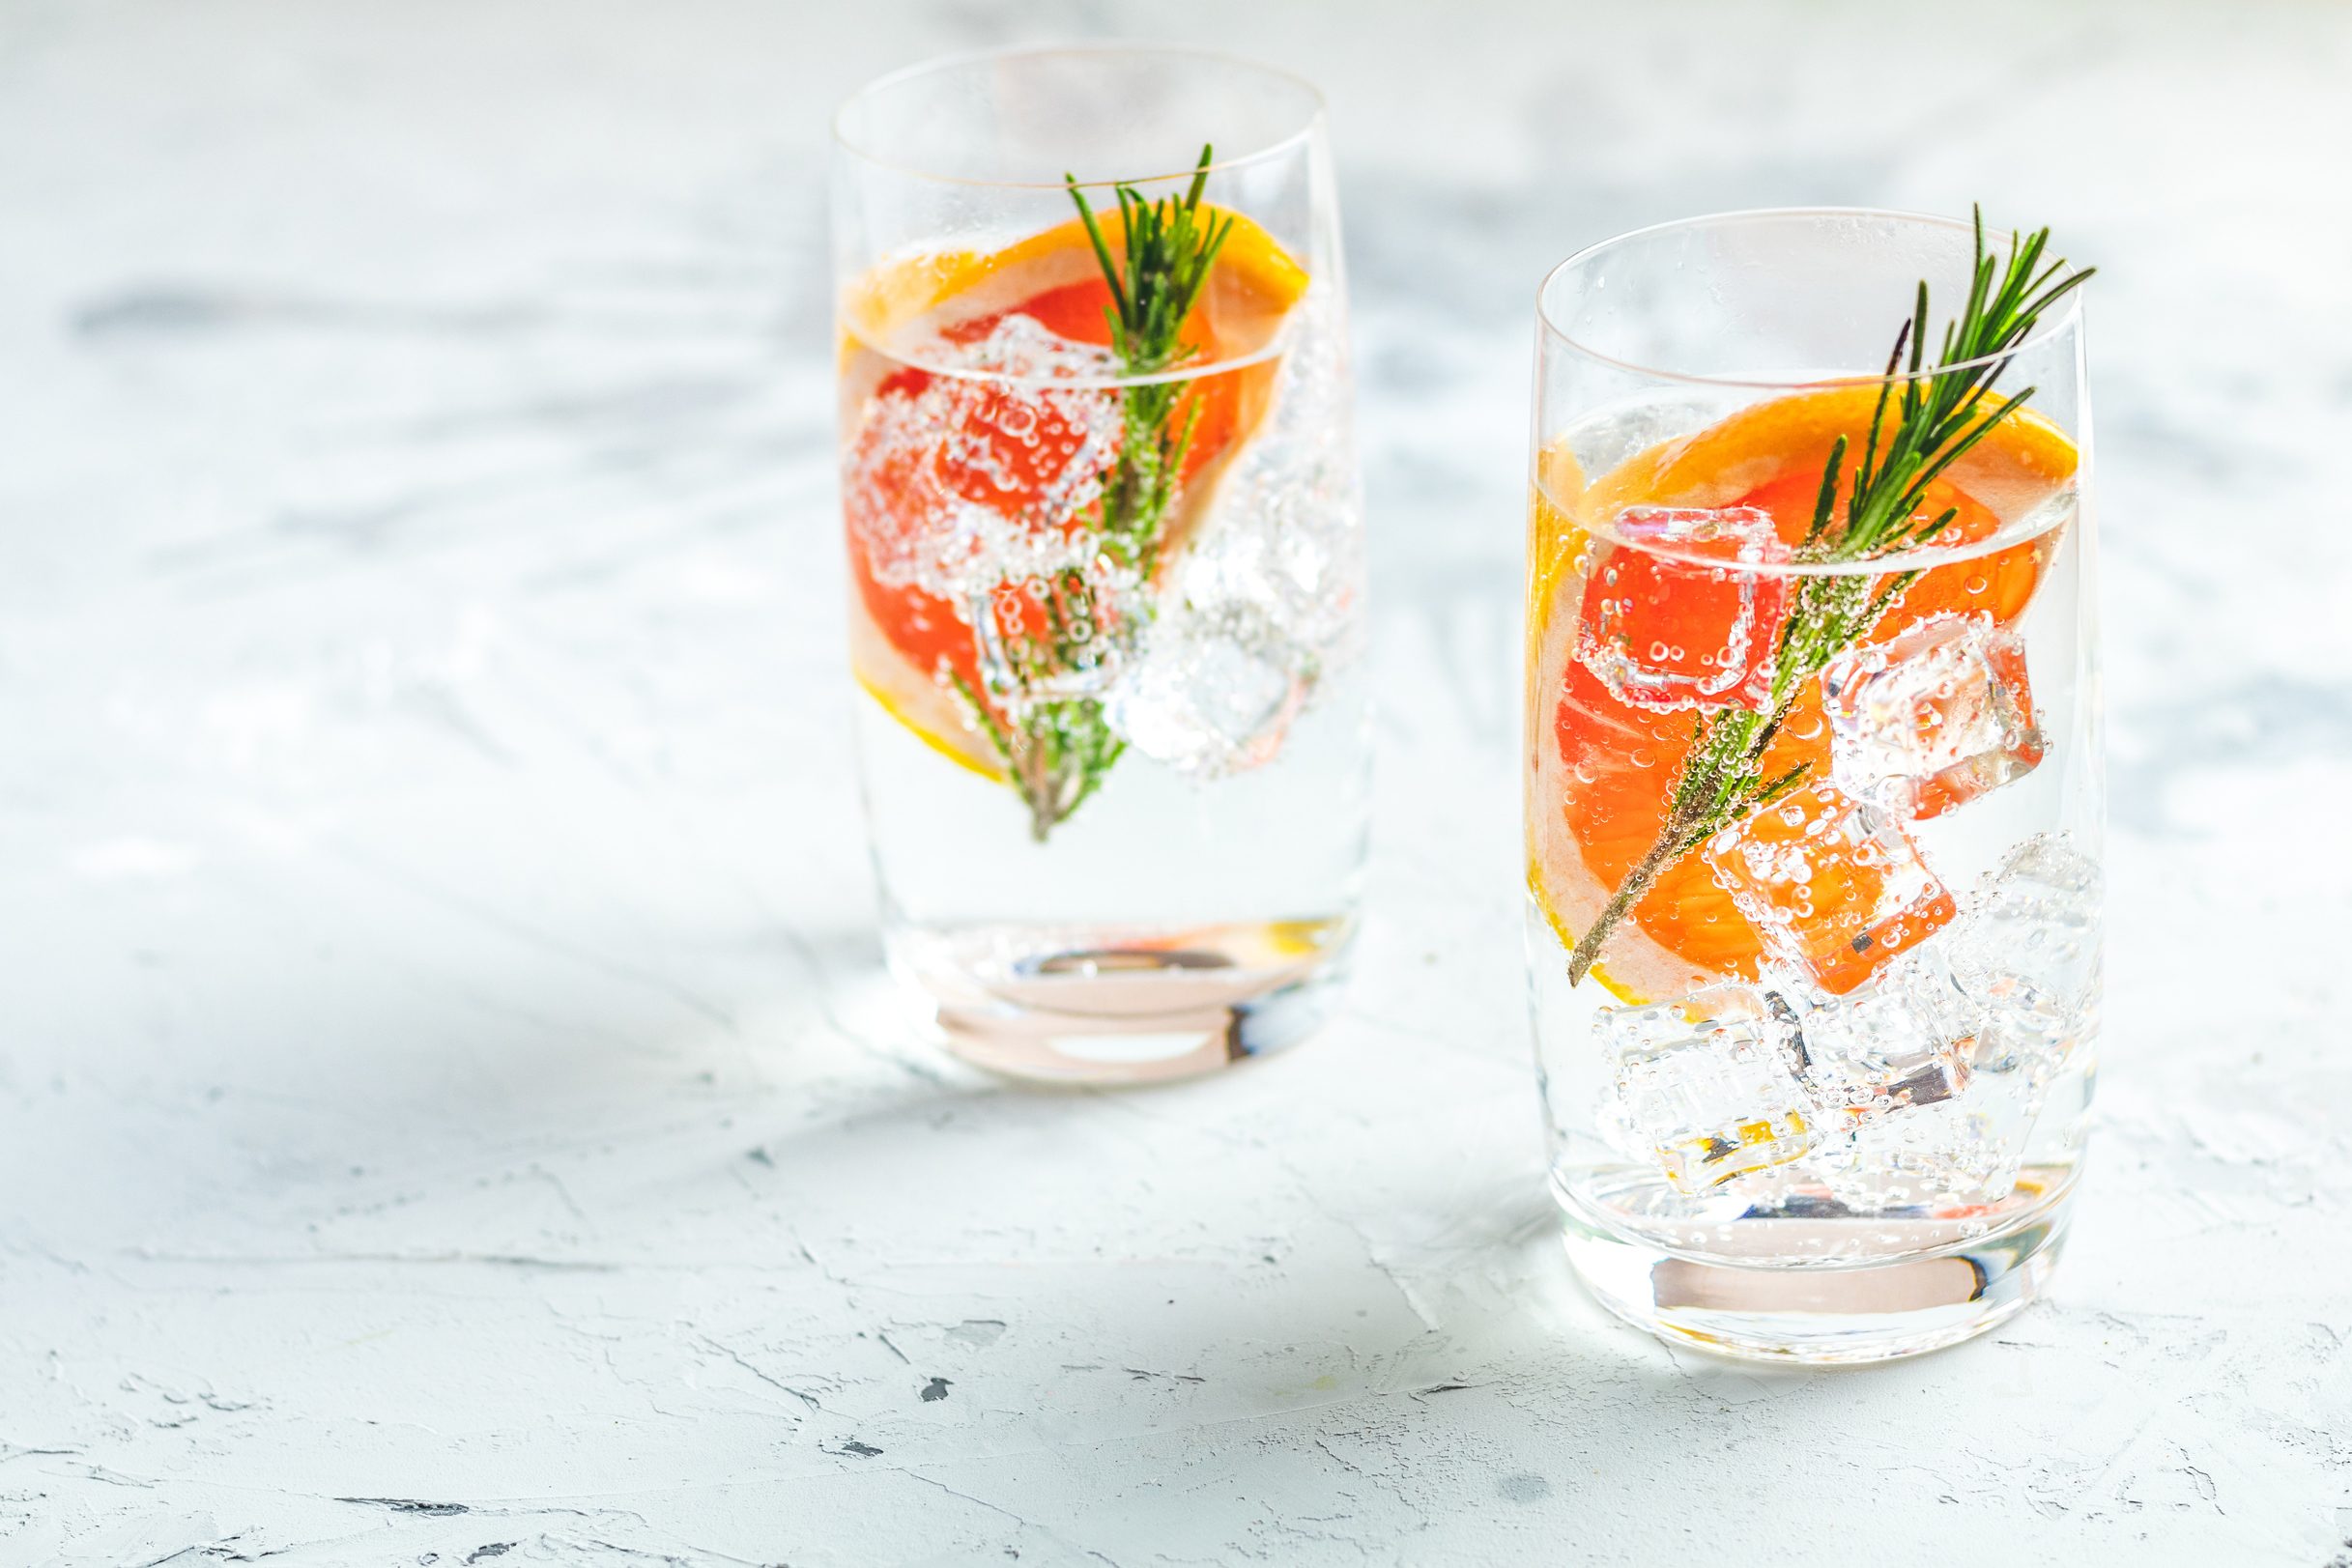 Streamertail & Tonic - 25ml-50ml Streamertail RumTonic (we recommend Fever-Tree Mediterranean Tonic)1 Thin Slice of OrangeFill a long glass with Ice and pour in your Streamertail. Top up with a Fever-Tree Mediterranean Tonic or your preferred tonic. Get creative with your garnishes by adding herbs, spices or fruits depending on your mood!